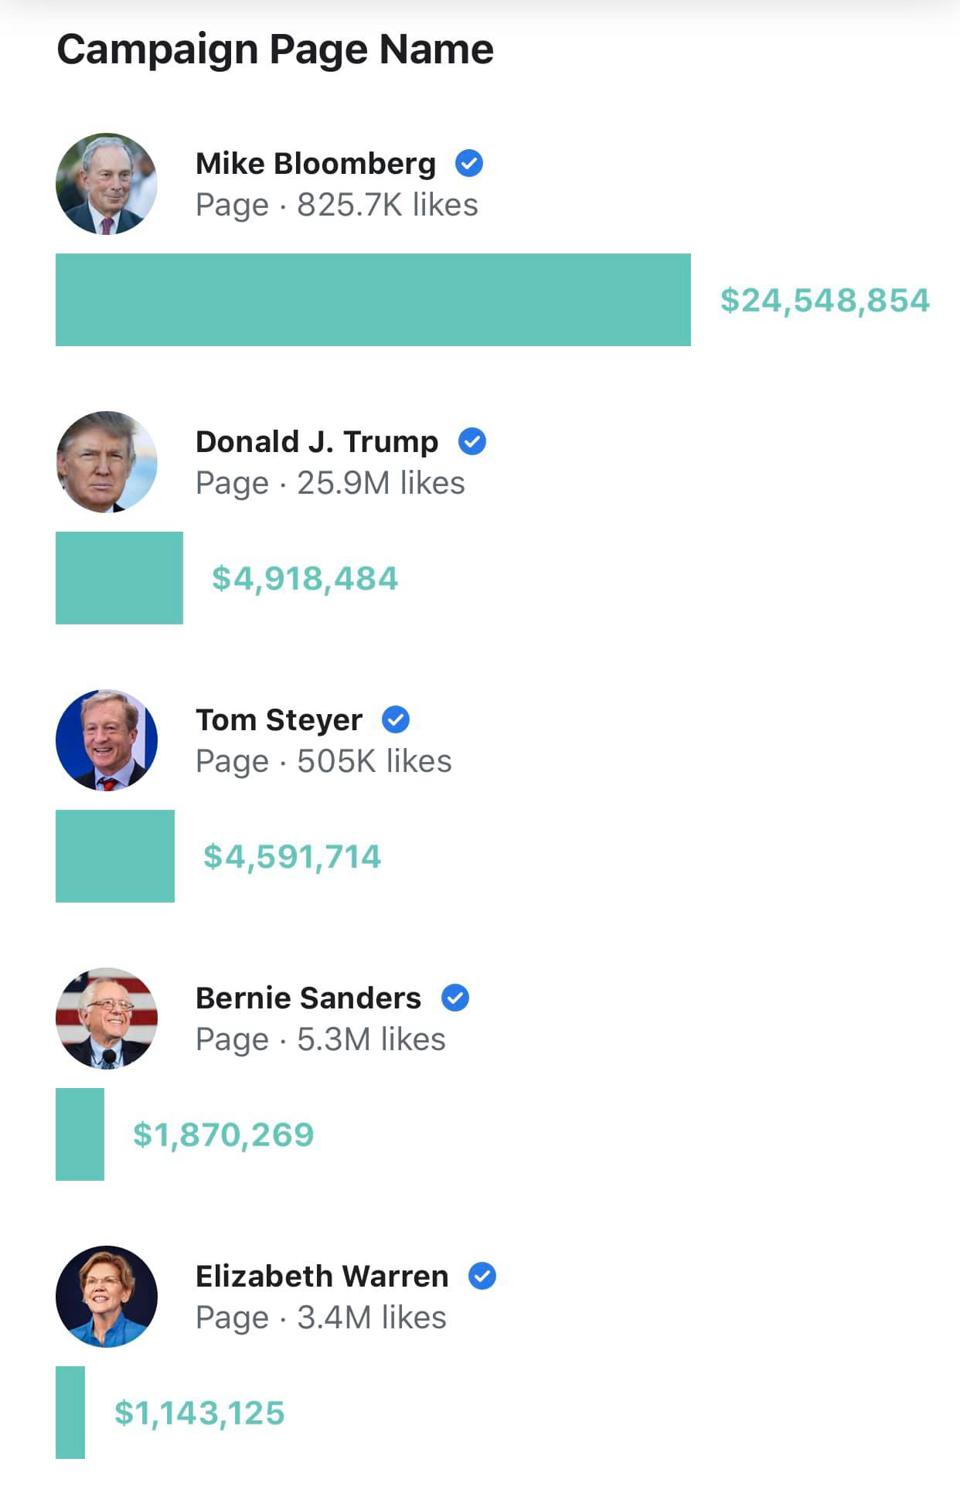 Campaign spending by candidates for presidential nominations.